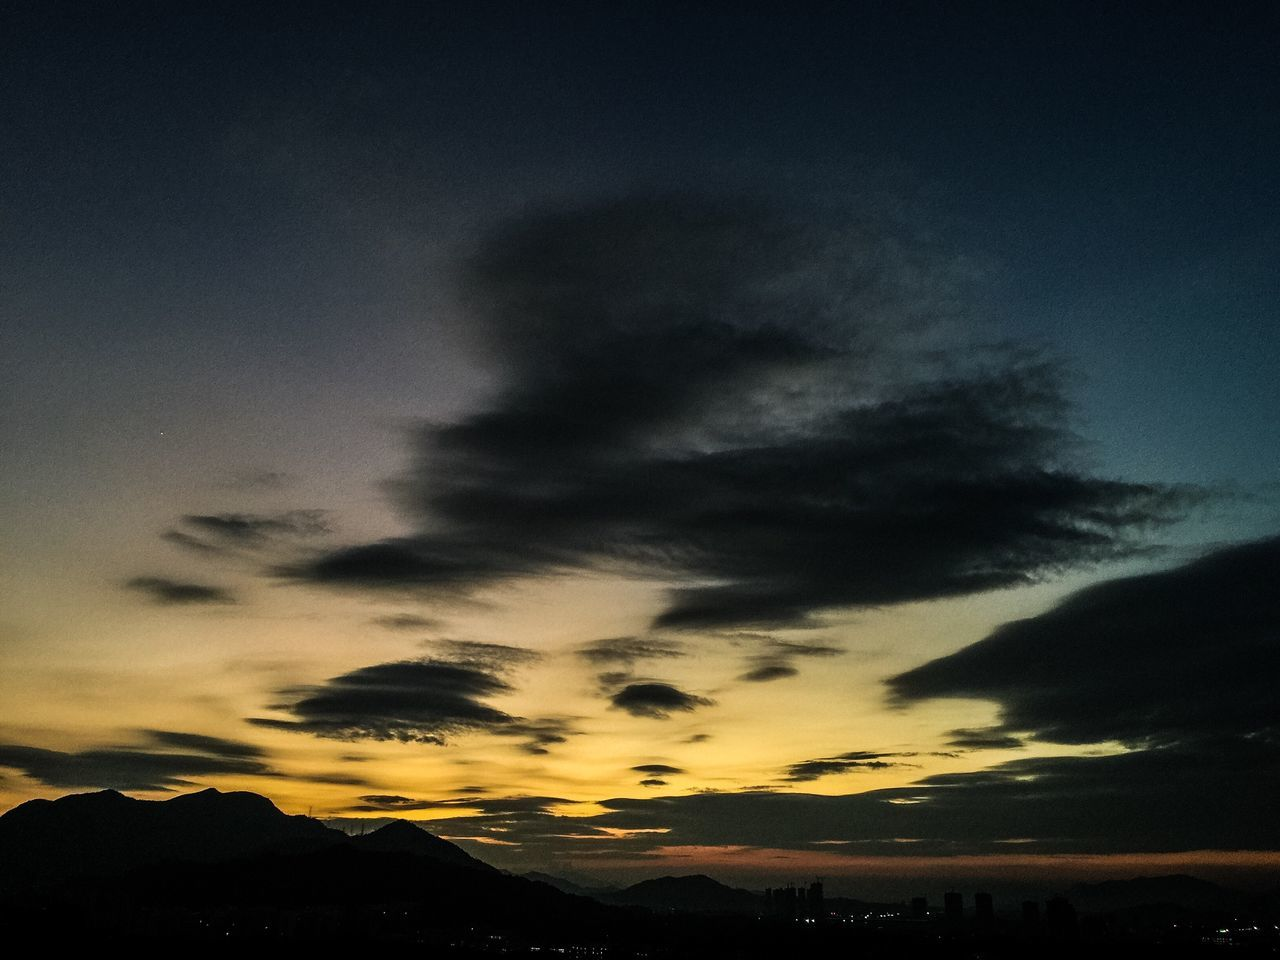 Scenics Silhouette Nature Tranquility Beauty In Nature Sky Mountain Tranquil Scene Sunset Cloud - Sky No People Dragon China Zhuhai Dramatic Sky Outdoors Aurora Polaris Star - Space Astronomy Day